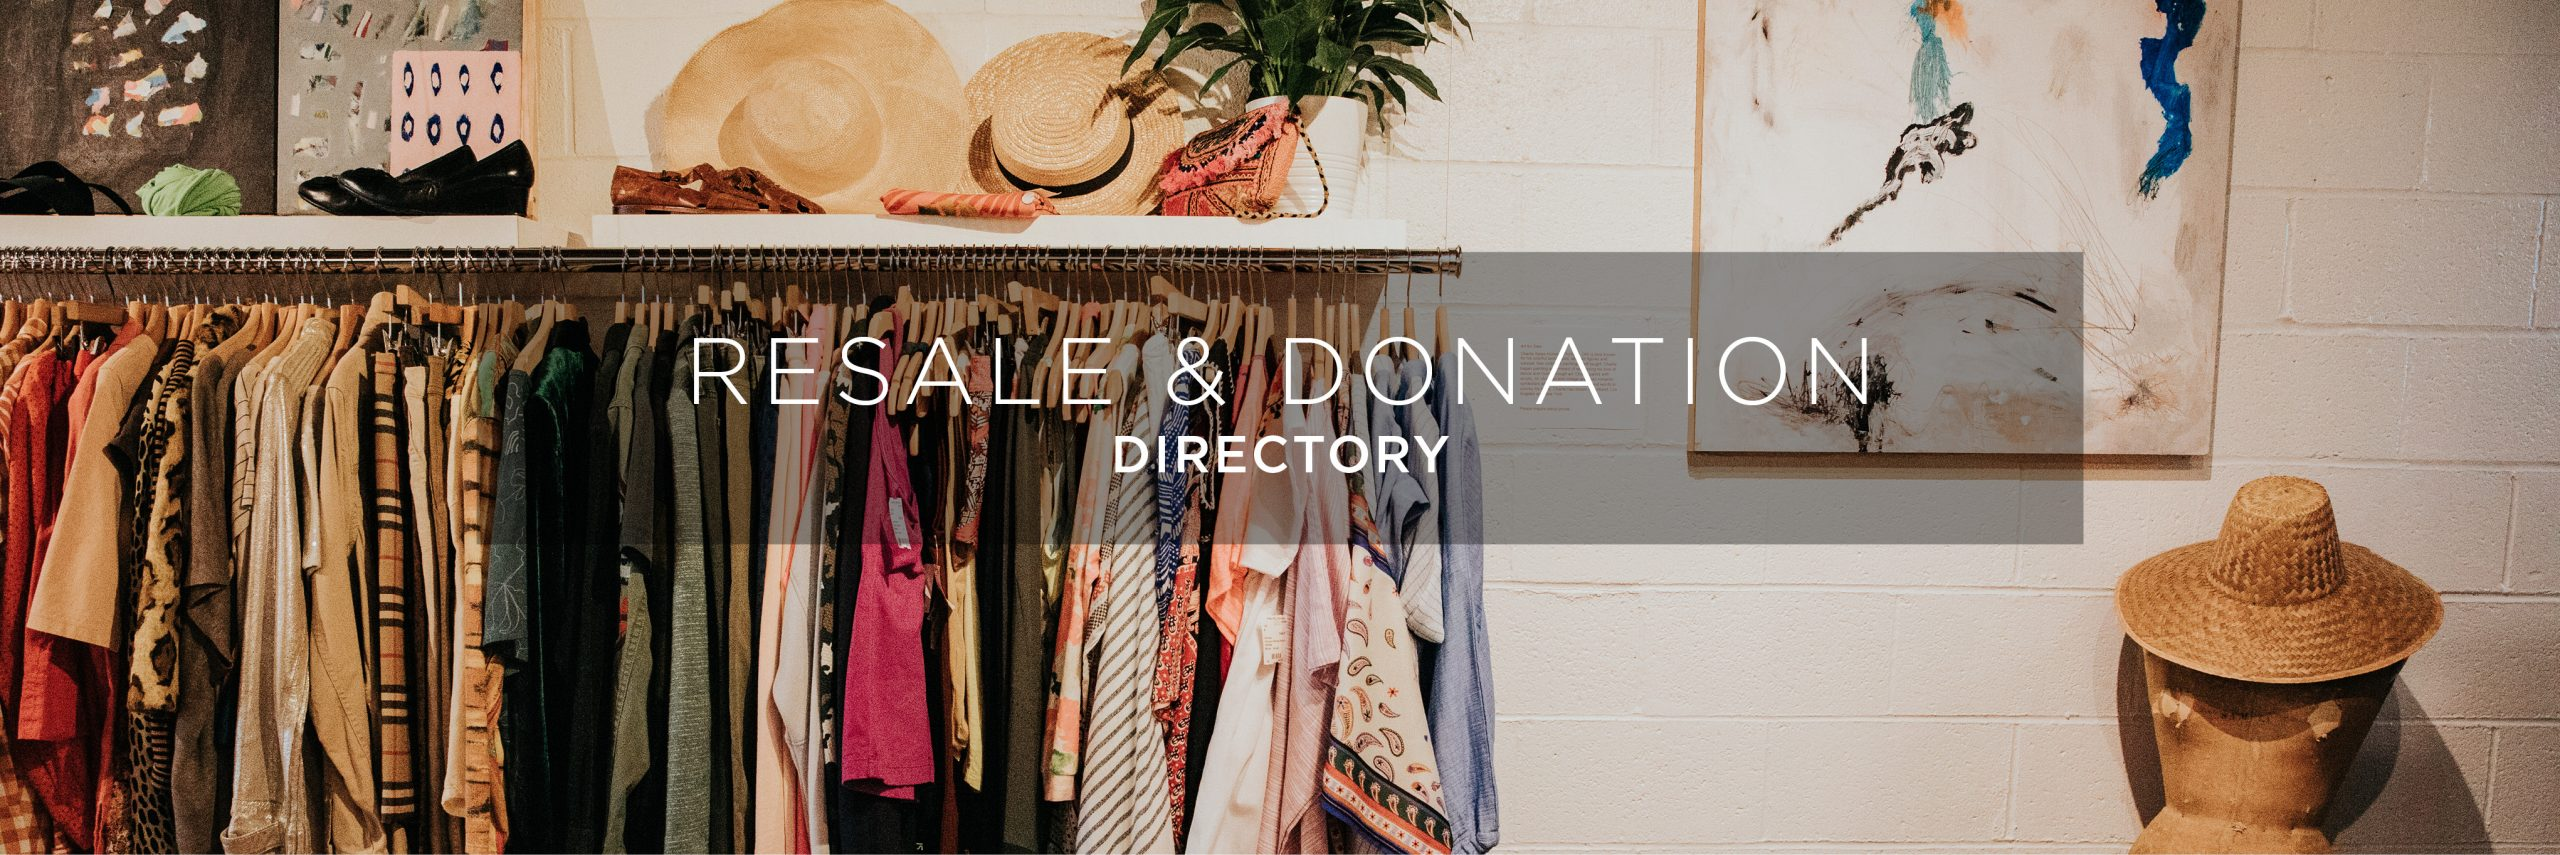 RESALE_CONSIGNMENT_DONATION_DIRECTORY_PORTLAND